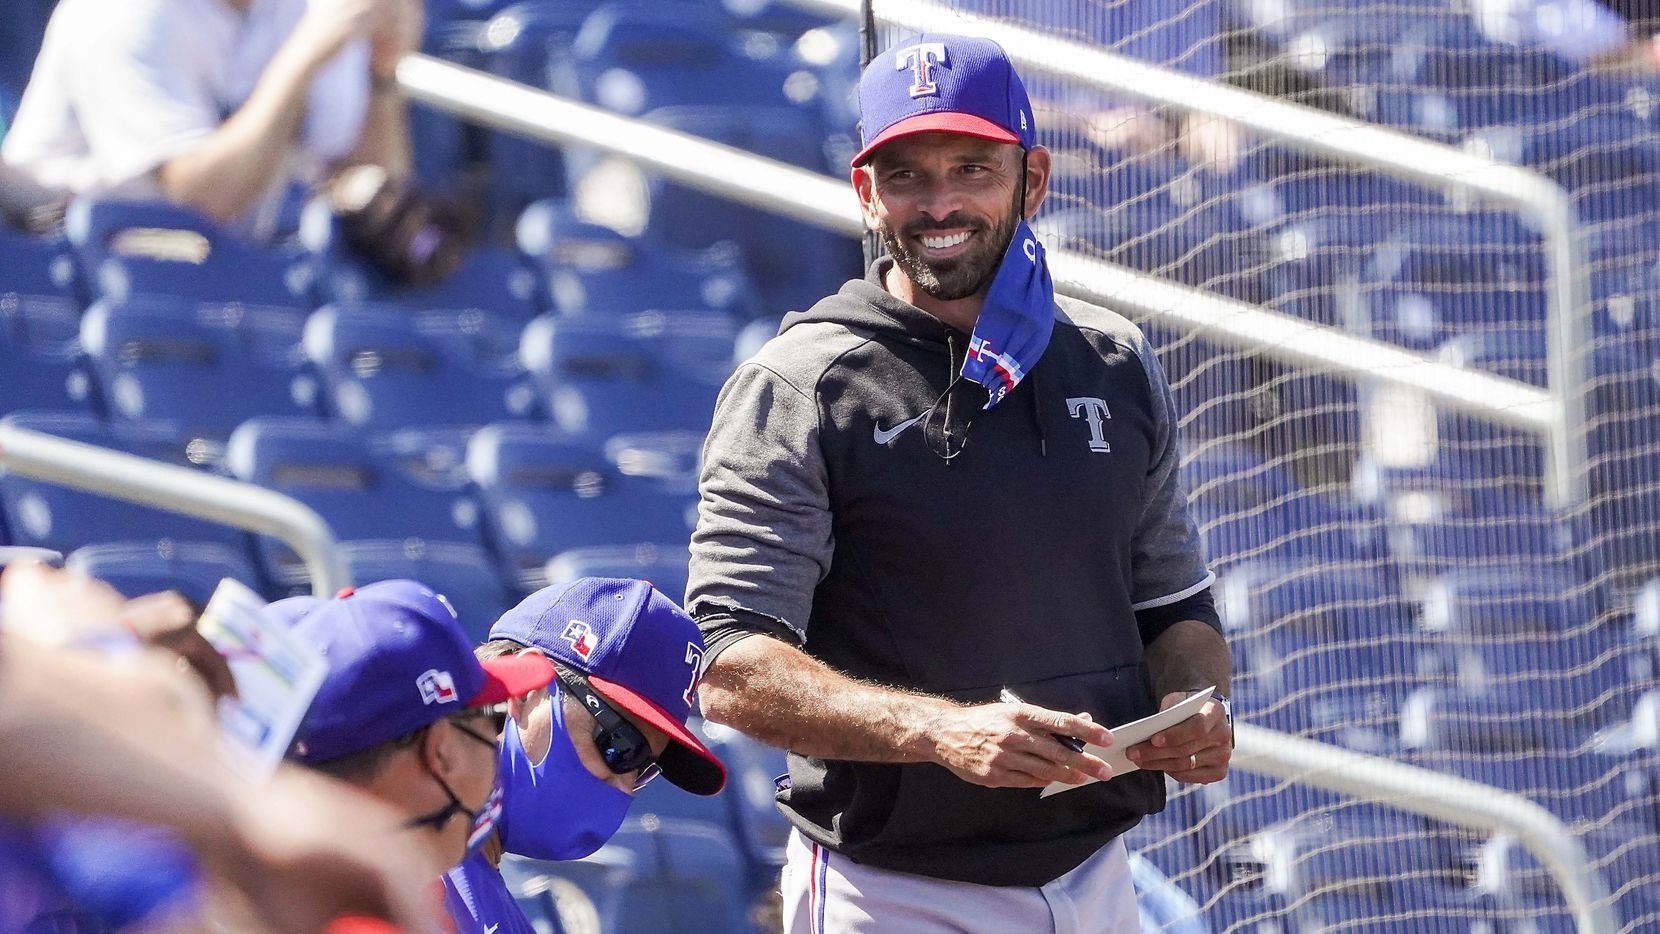 Texas Rangers manager Chris Woodward smiles as he watches during the first inning of a spring training game against the Seattle Mariners at Peoria Sports Complex on Wednesday, March 10, 2021, in Peoria, Ariz.